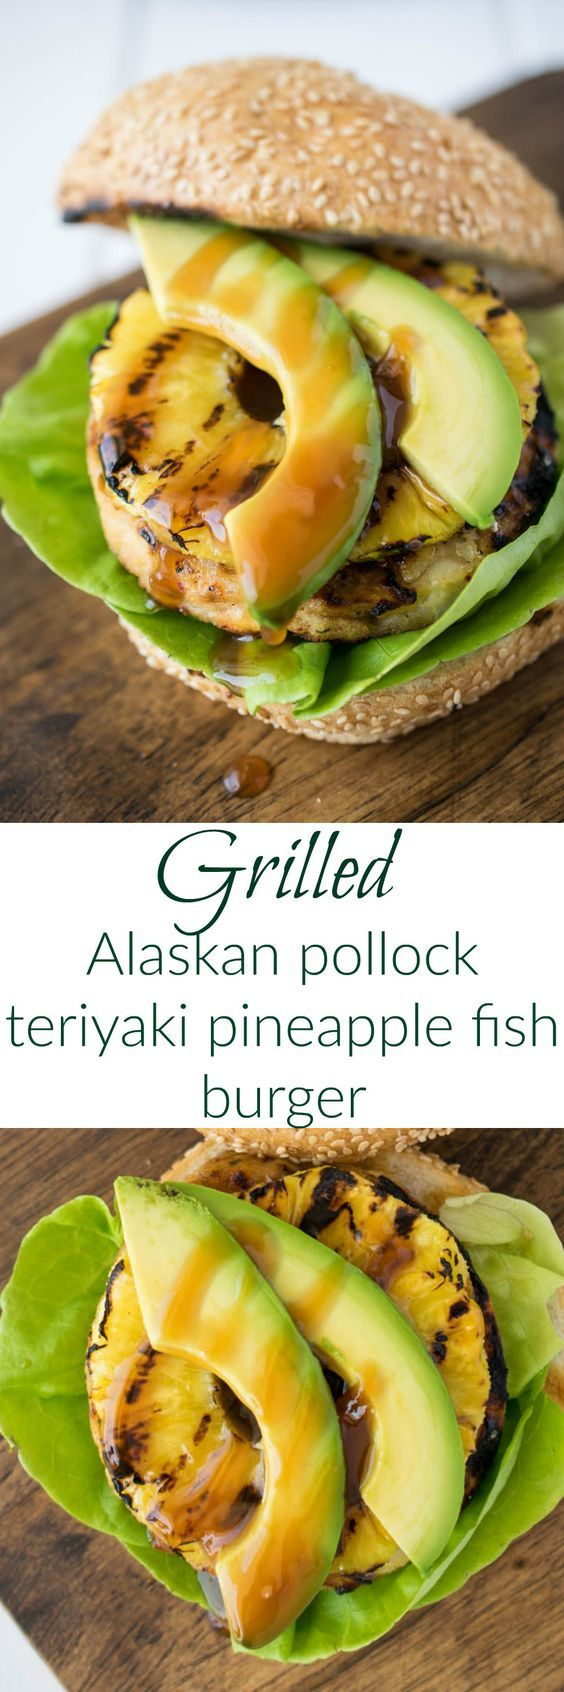 The Ultimate Pinterest Party, Week 107 Grilled Alaskan pollock teriyaki pineapple fish burger is white fish burger with homemade teriyaki sauce topped with sweet grilled pineapple and sliced avocado is burger deliciousness without the guilt. #Swapyourburger #ad @tridentseafoods